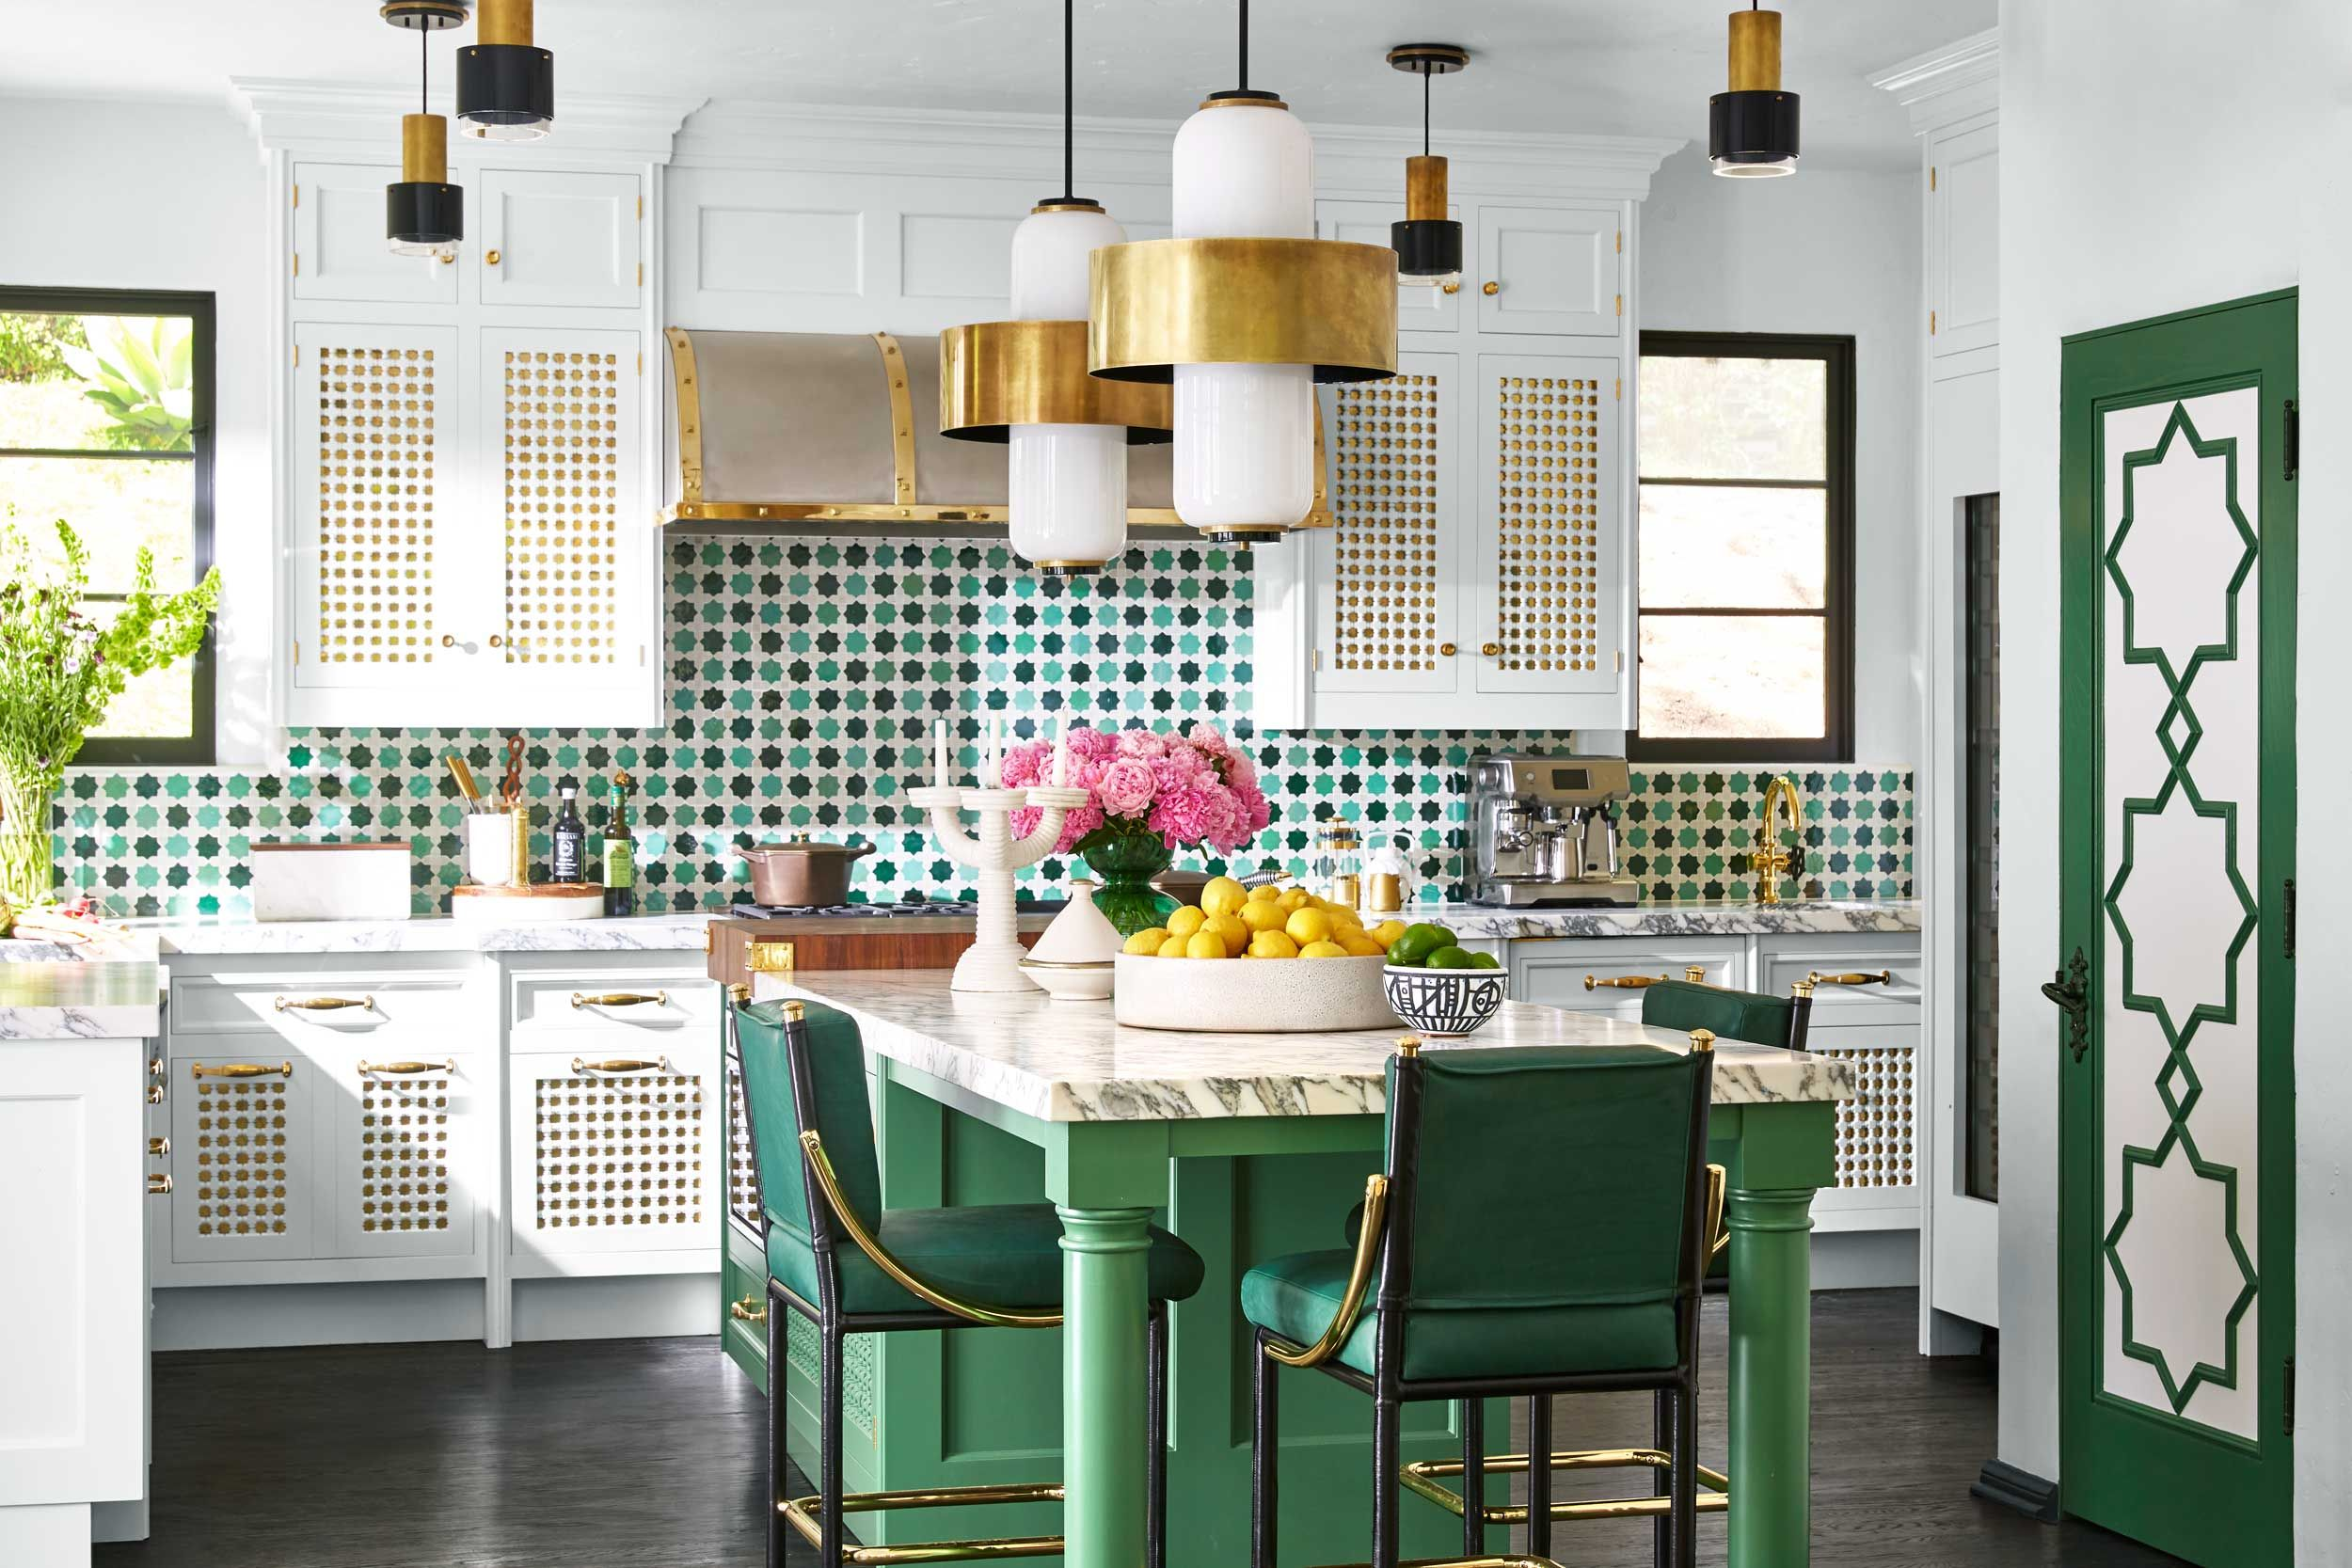 75 kitchens thatll make you want to redo yours